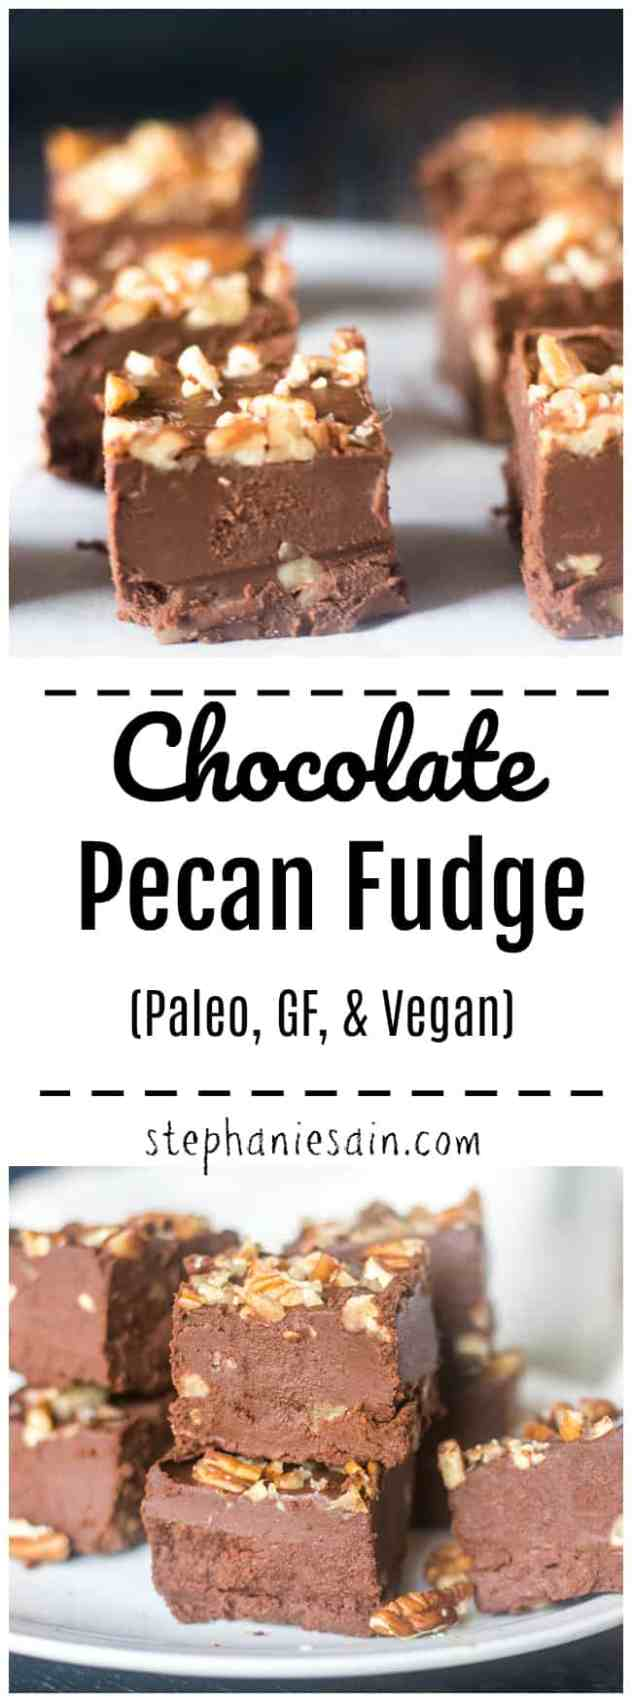 This Chocolate Fudge is rich creamy, and loaded with chocolatey flavor. Crunchy pecans added to the fudge making it a perfect treat for the holidays or anytime. Super easy to make with less then 10 minutes prep. Vegan, Paleo, GF and No added refined sugars.